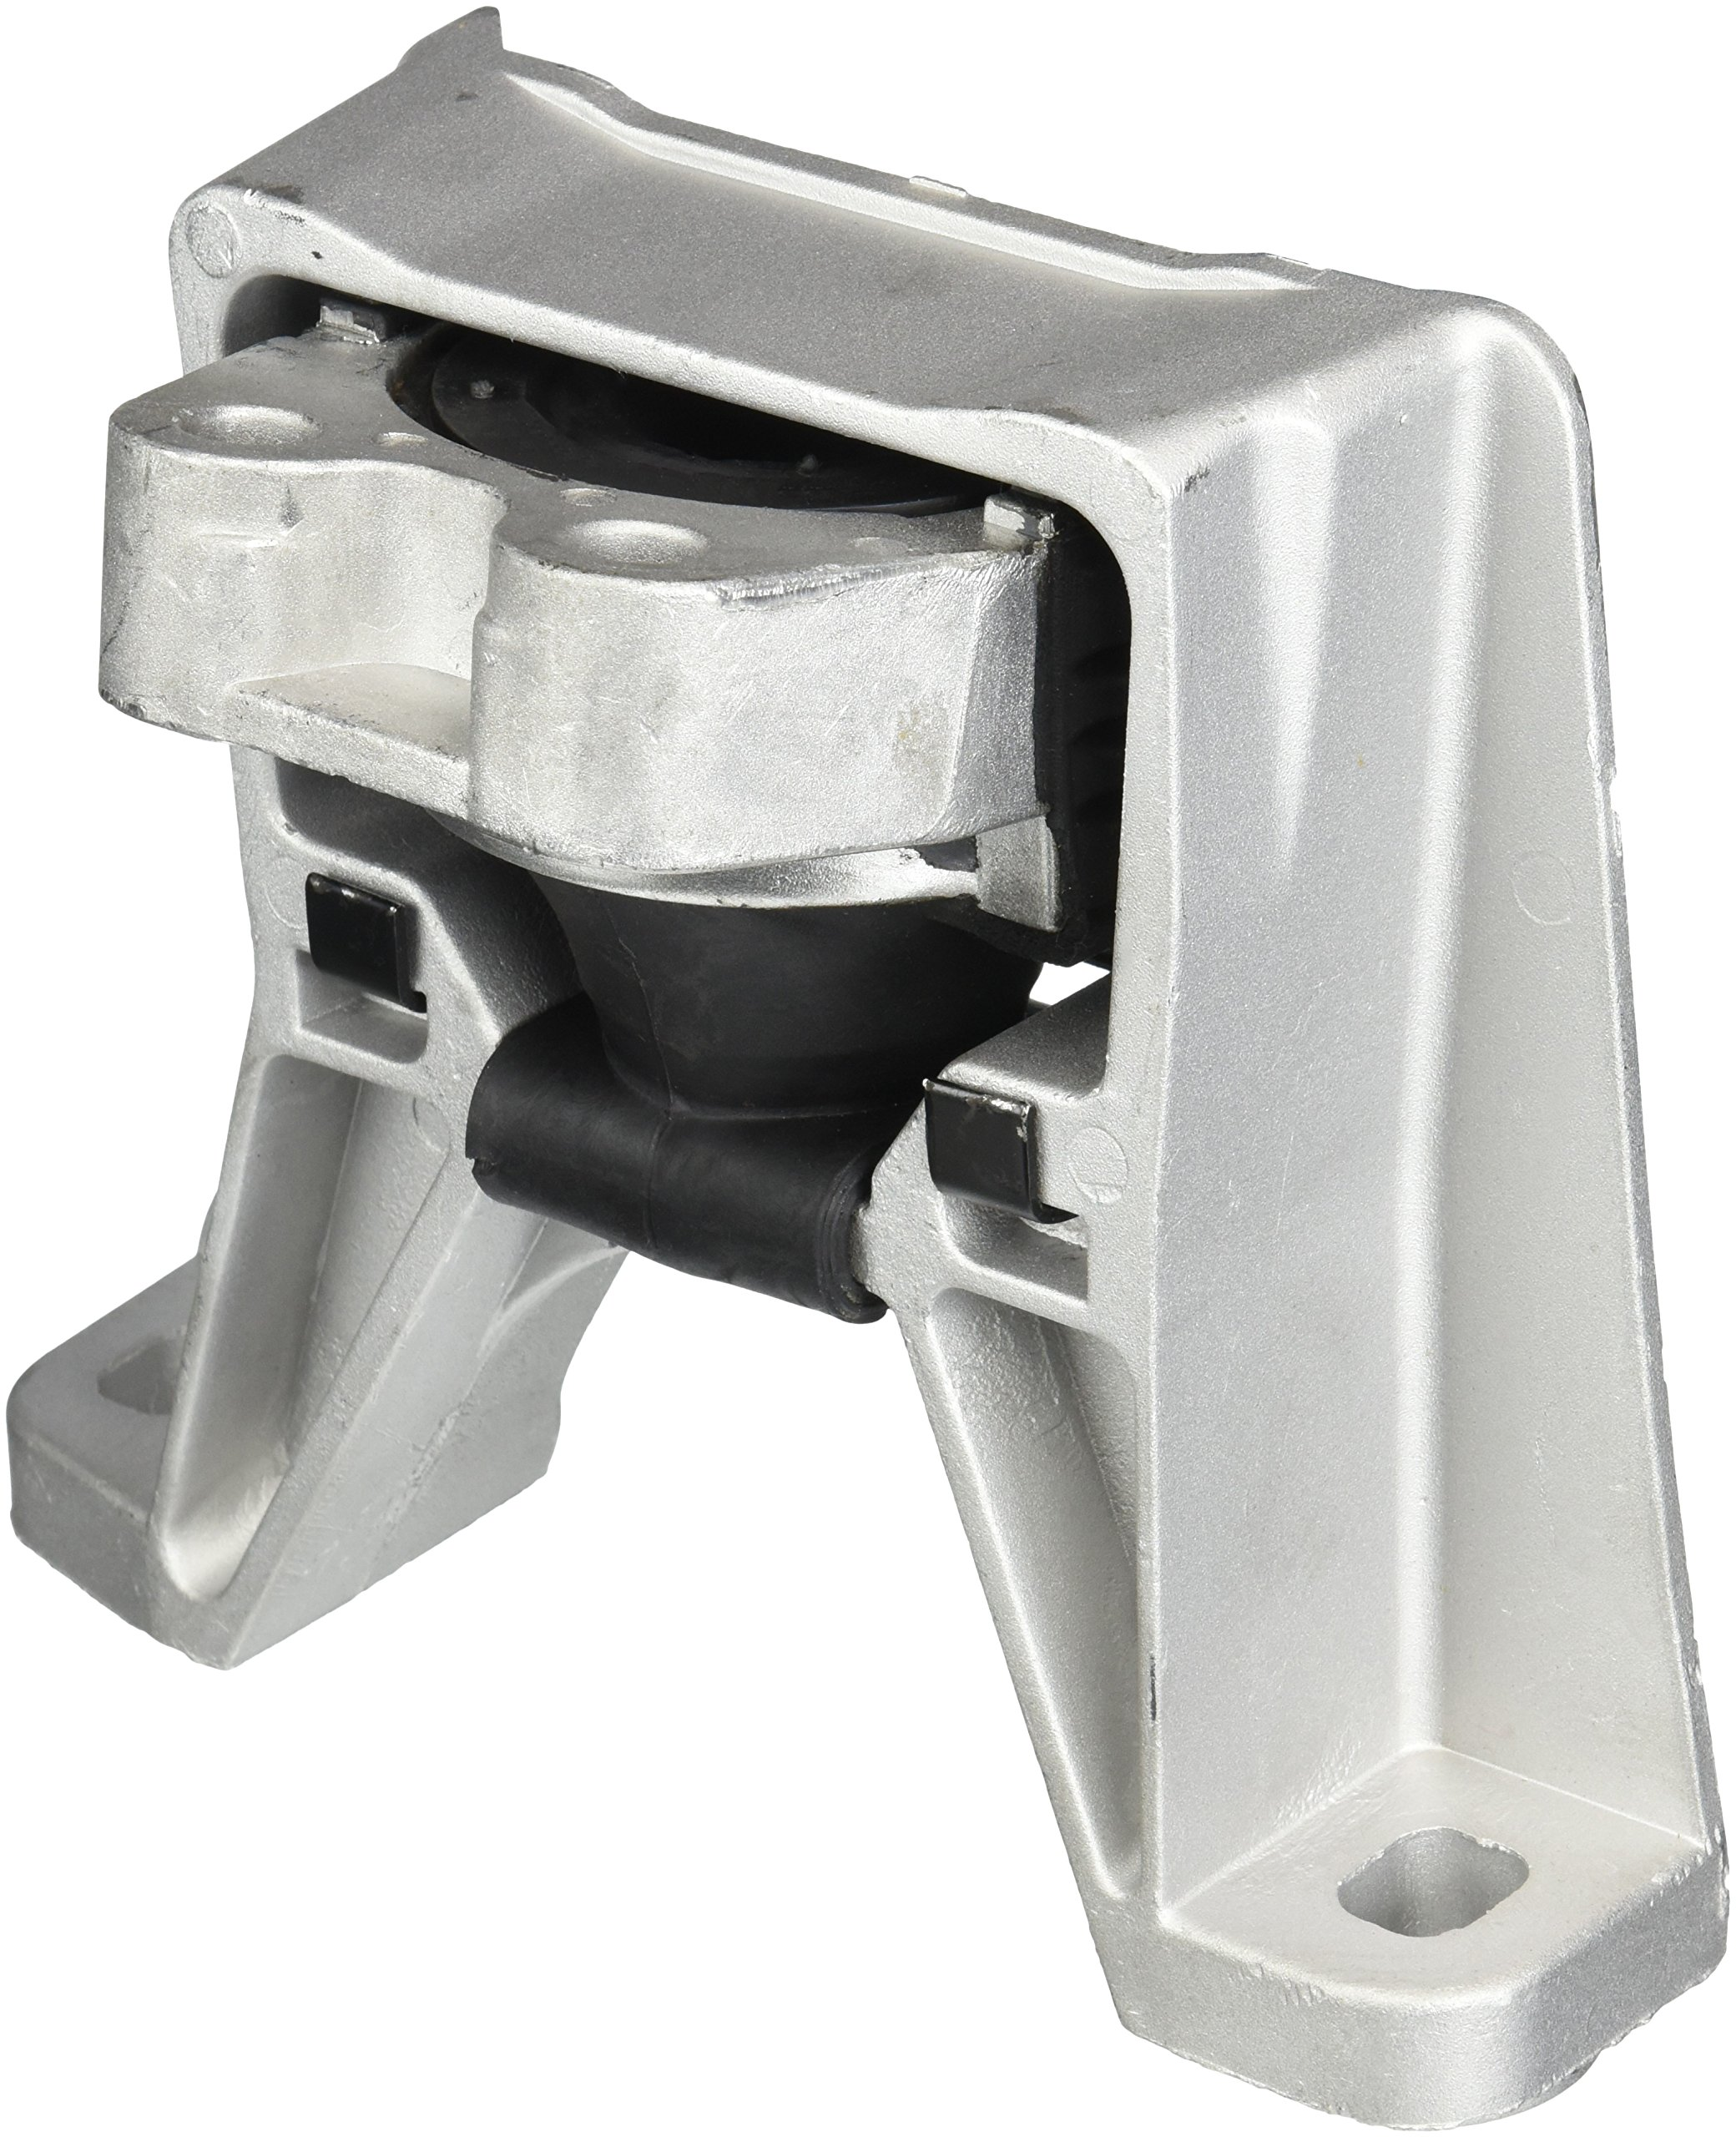 MotorKing FM02 Engine Mount (Fits Ford Focus Front Right) by MotorKing